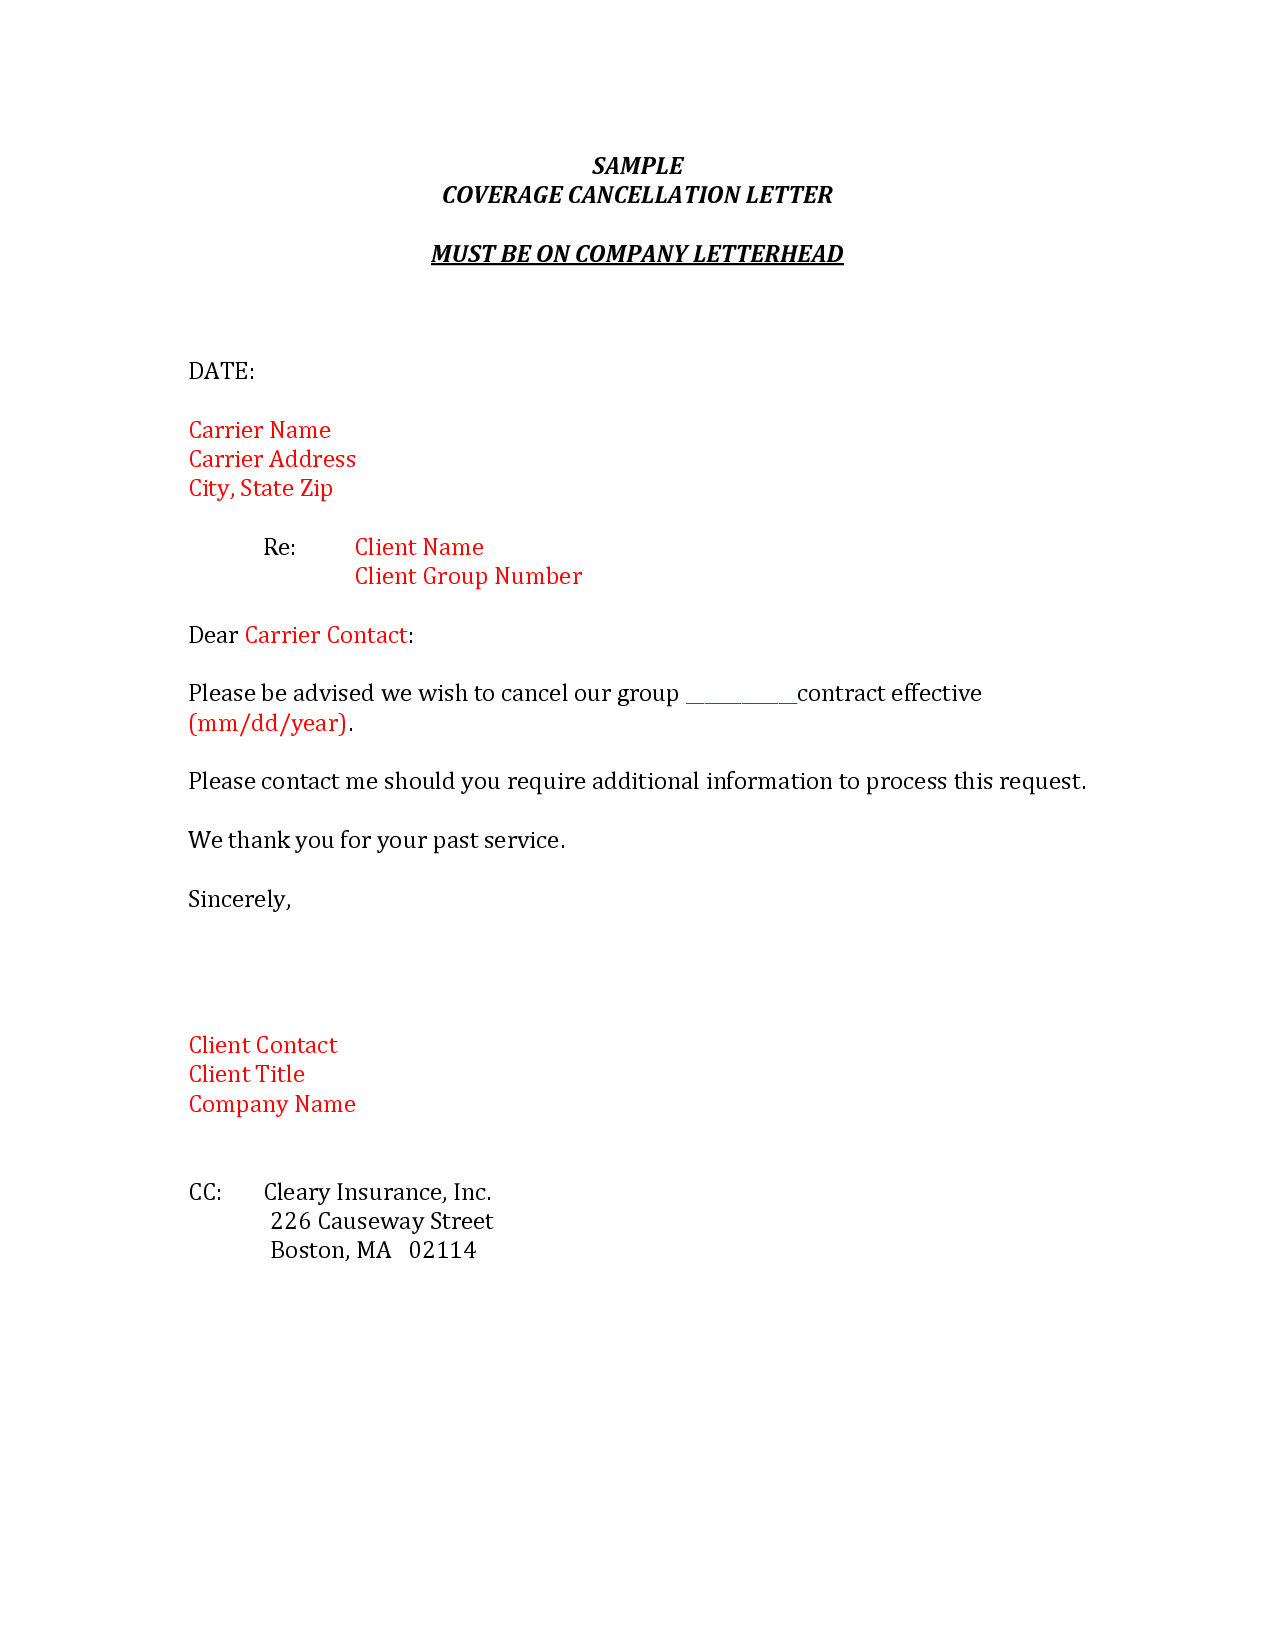 Request Letter Sample Insurance Cancellation Dental Appeal